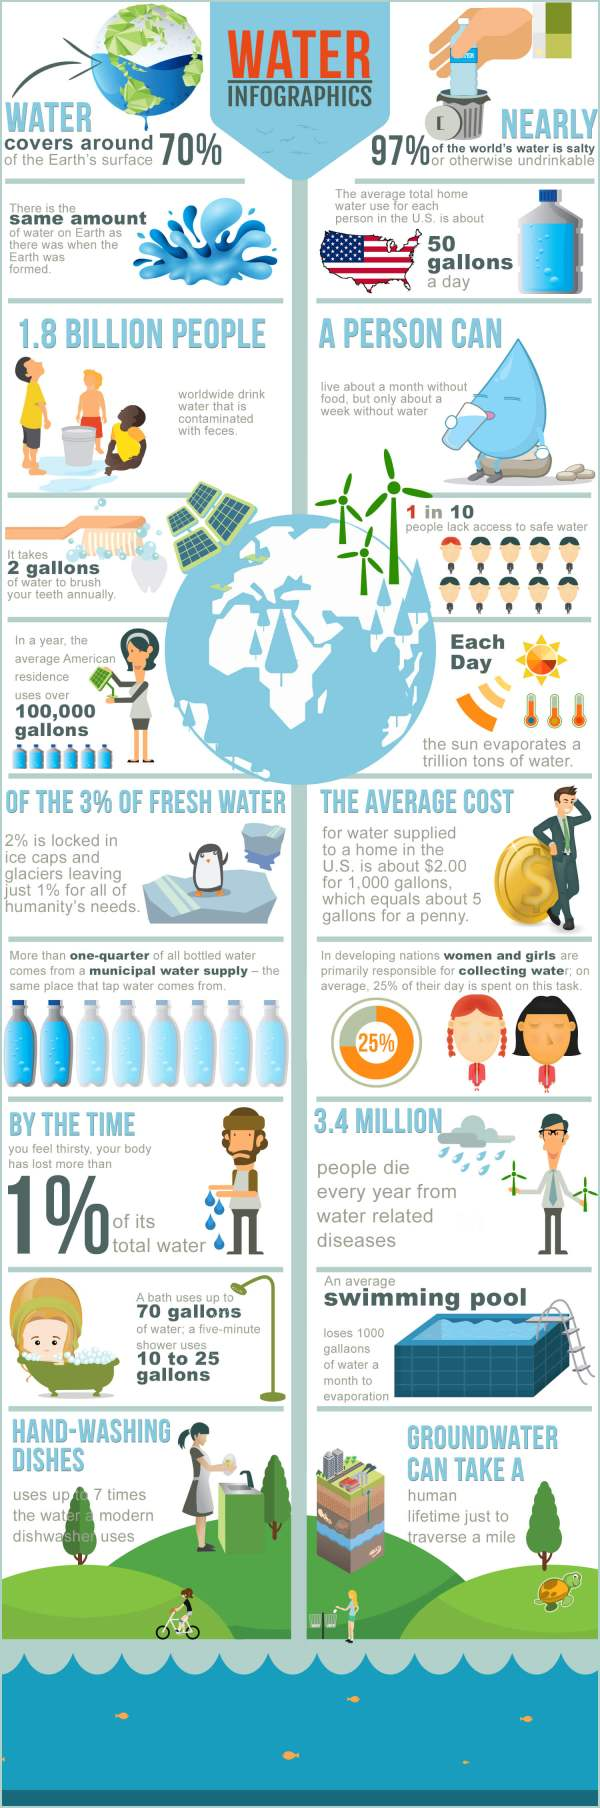 Water-infographic